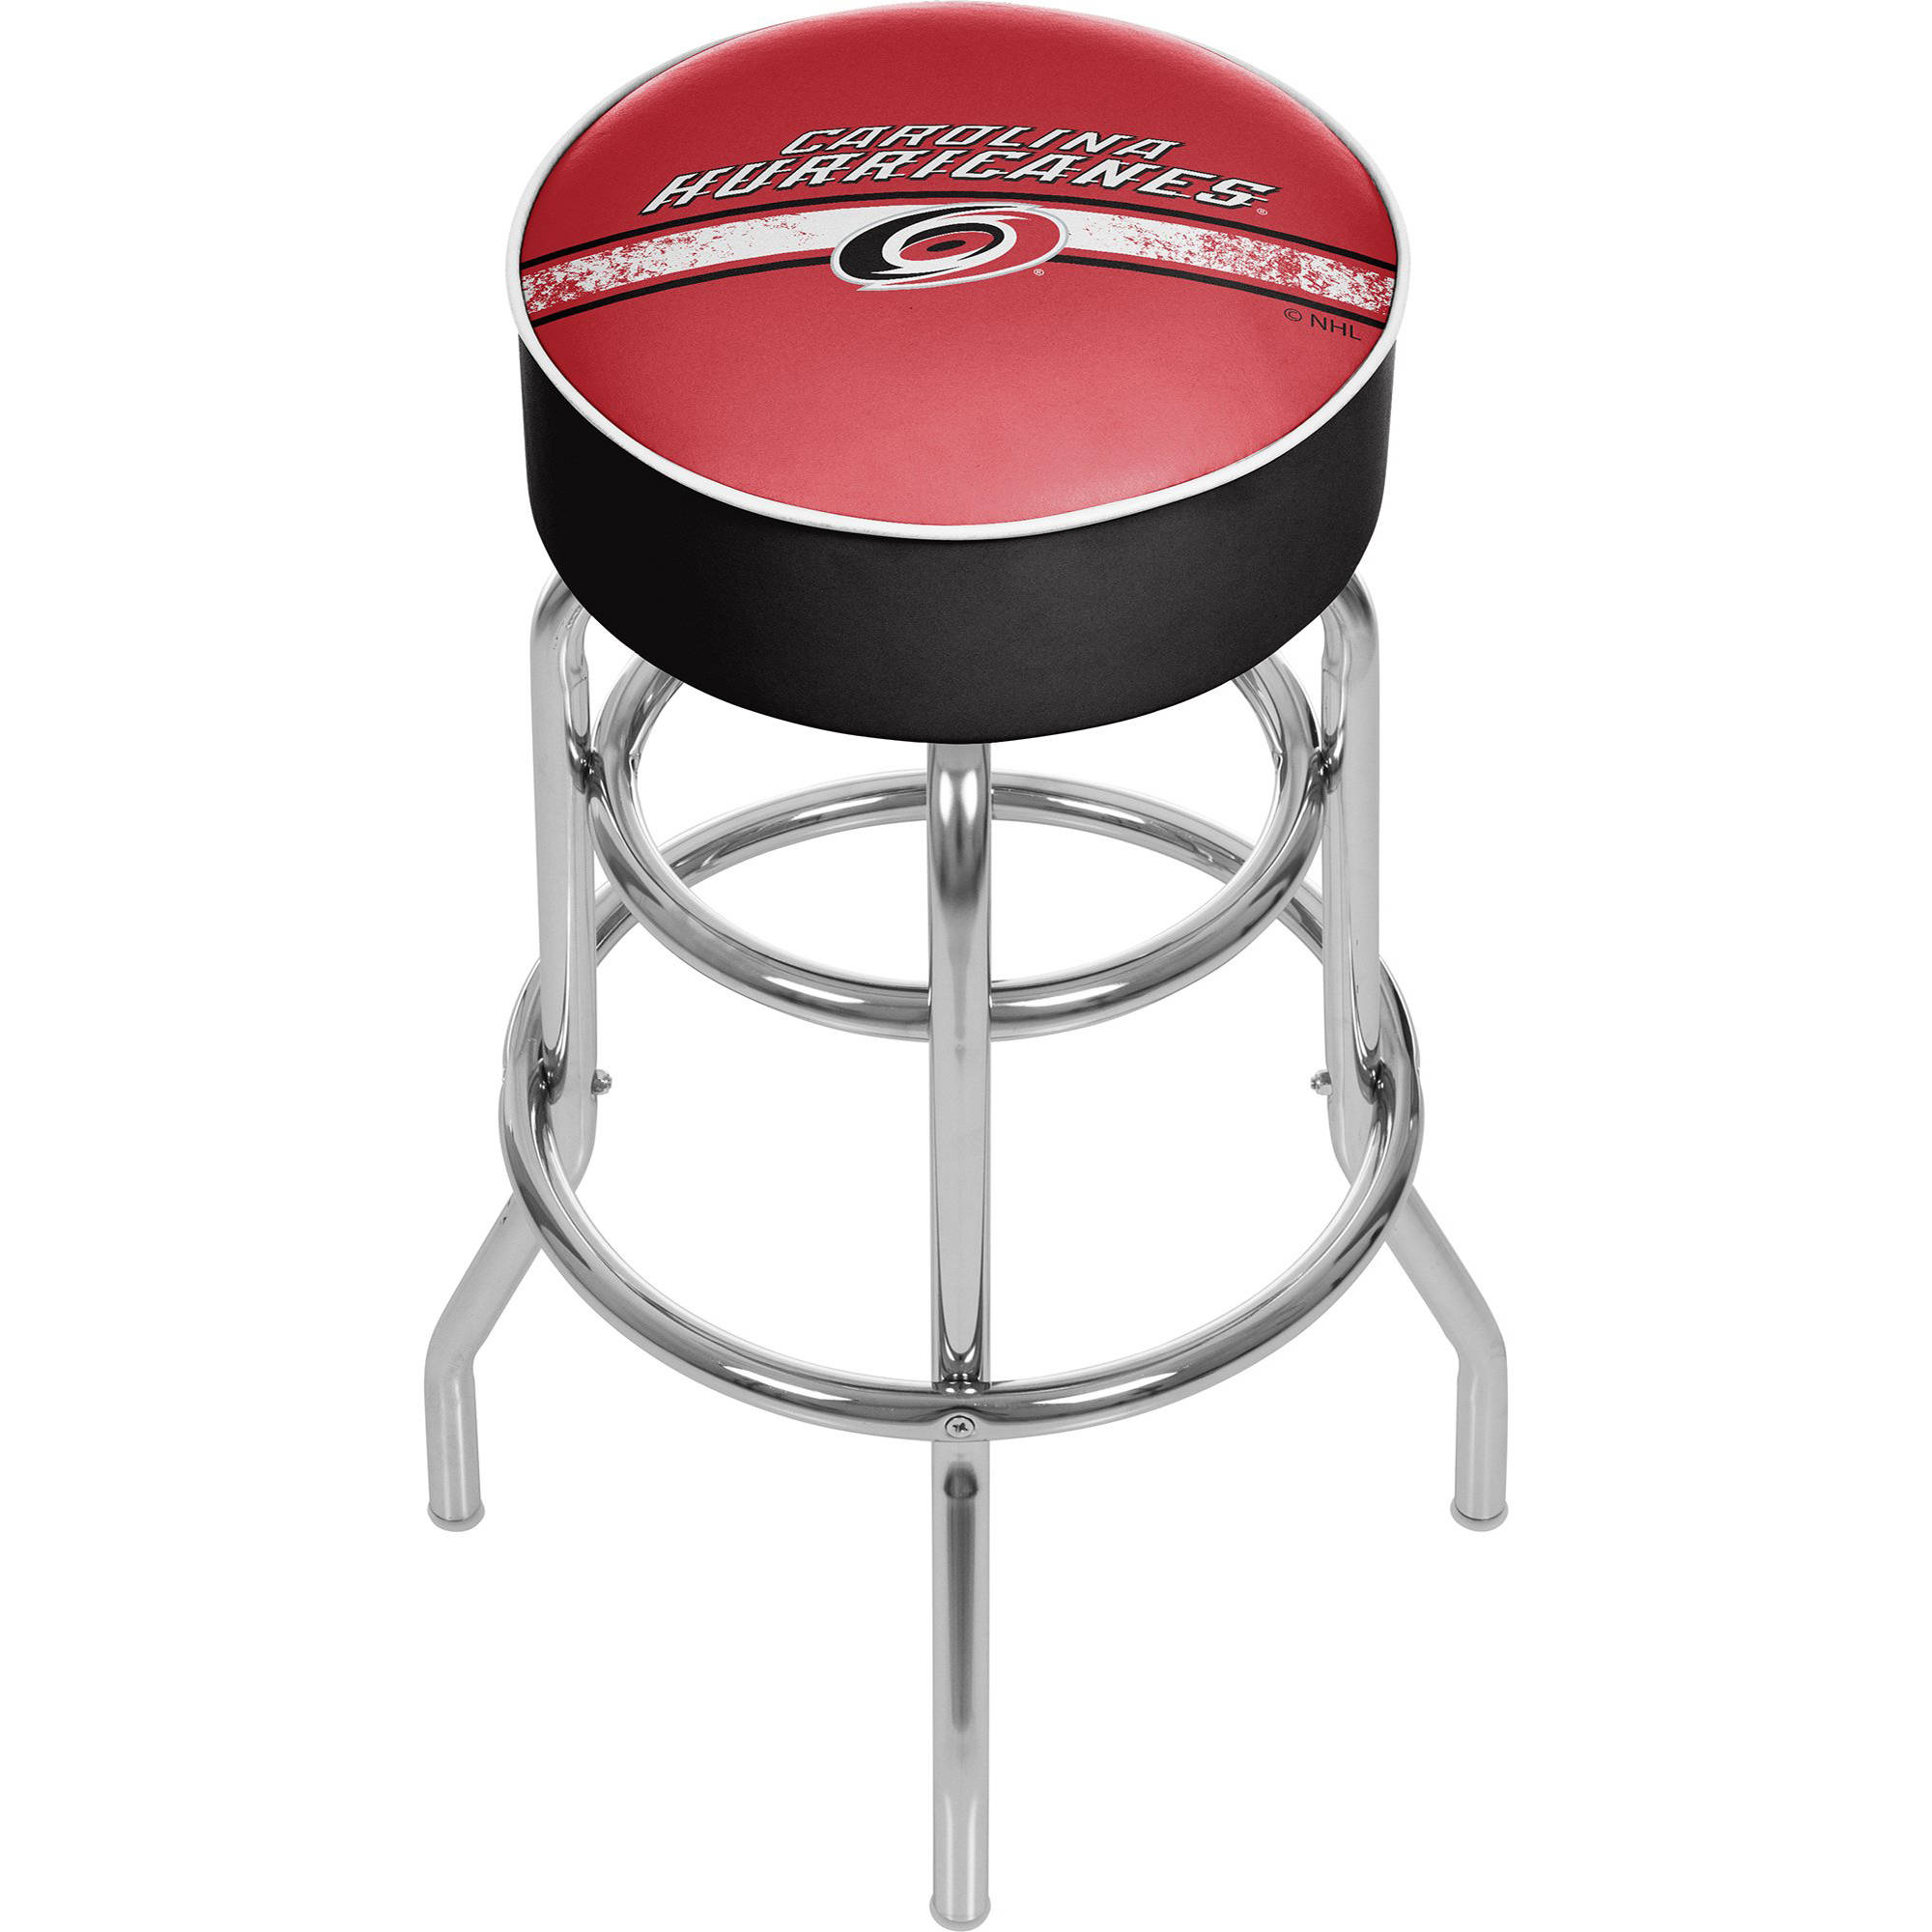 NHL Chrome Bar Stool with Swivel, Carolina Hurricanes